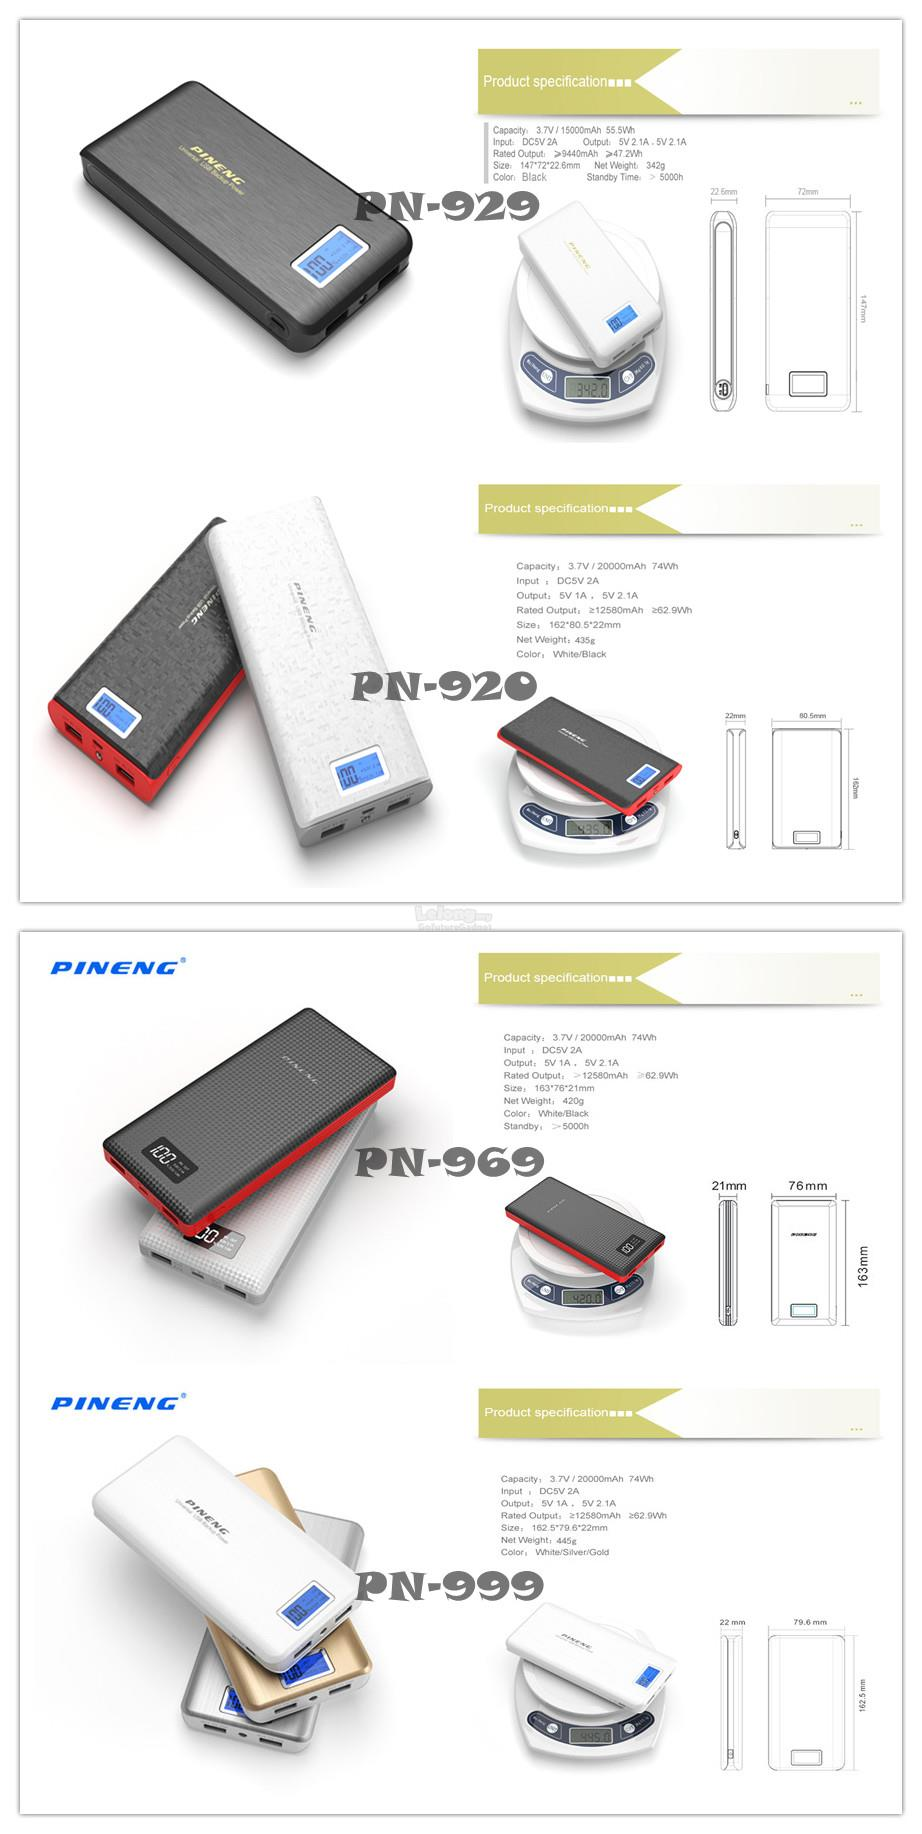 ORIGINAL POWER BANK PINENG PN999 PN969 PN920 PN929 PN963 20000MAH